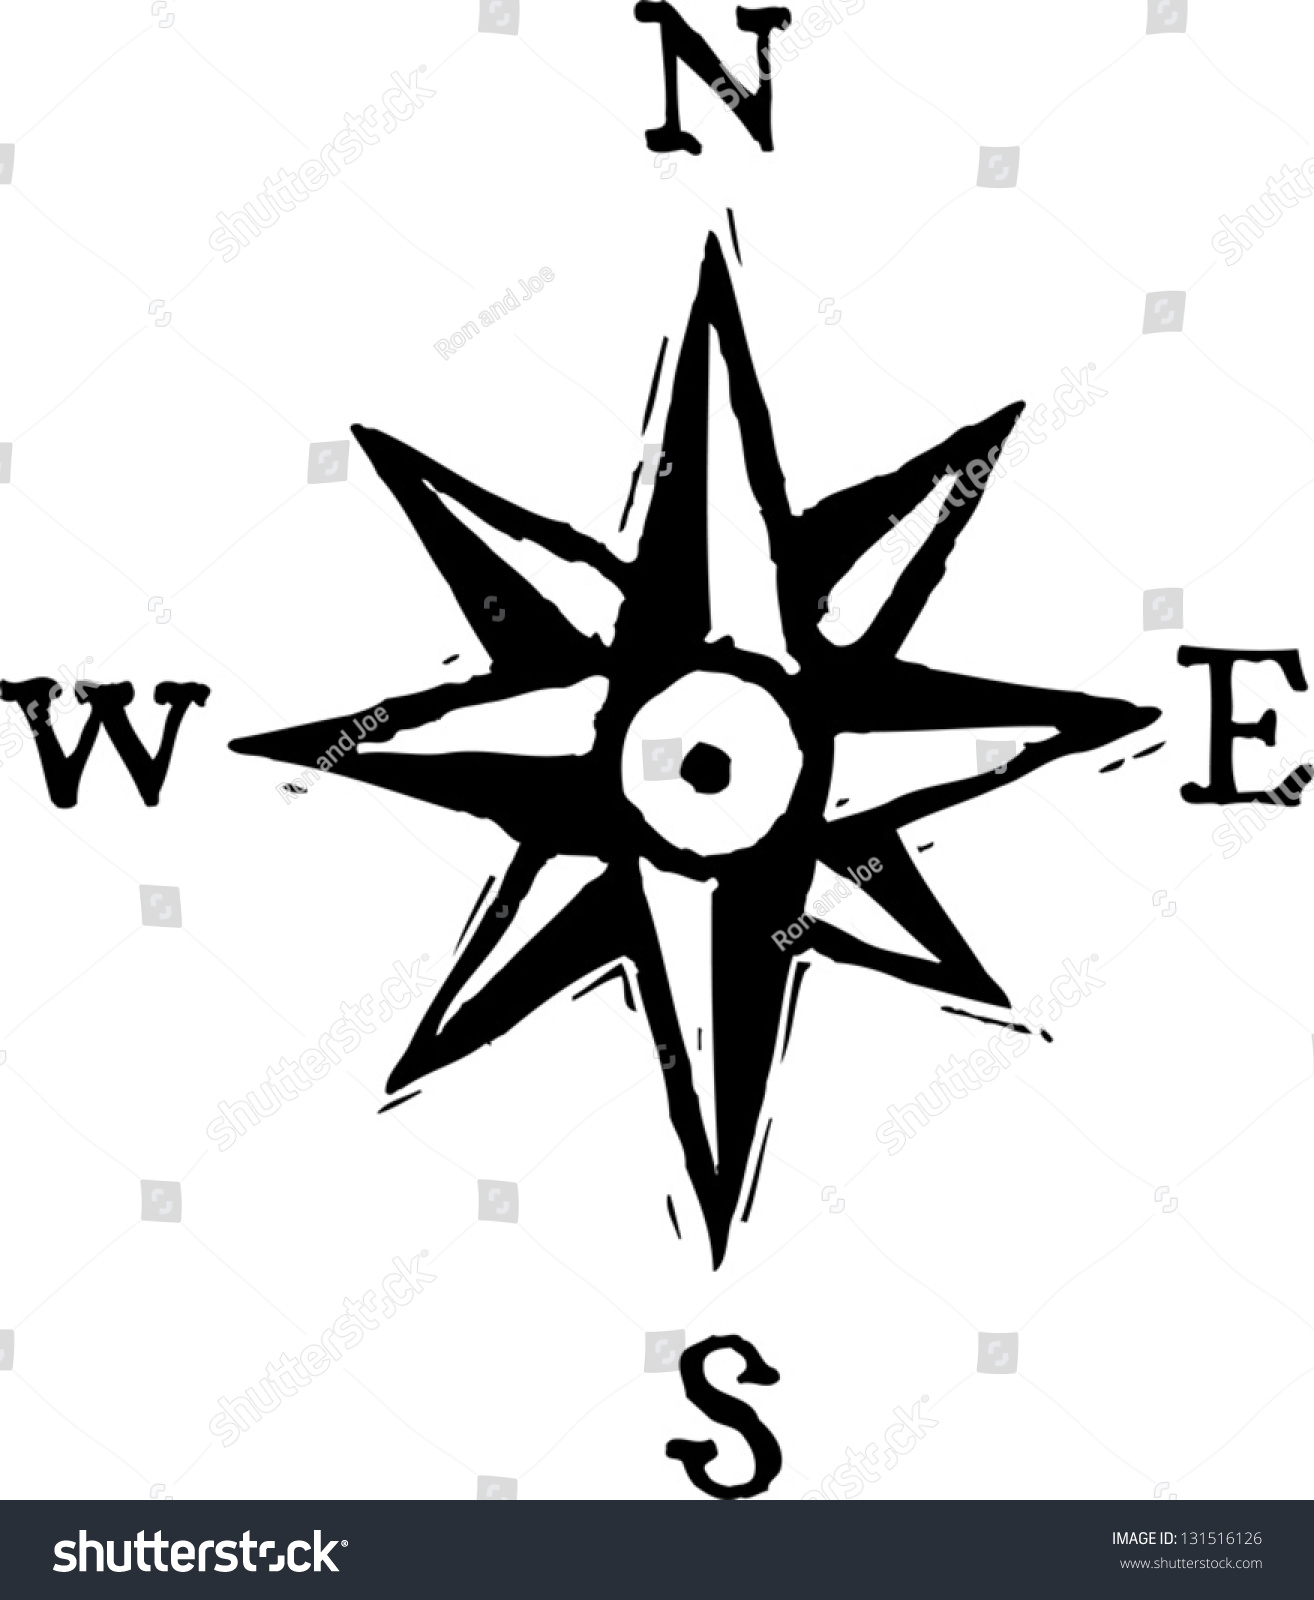 Black white vector illustration north west stock vector 131516126 black and white vector illustration of north west south east directions biocorpaavc Image collections